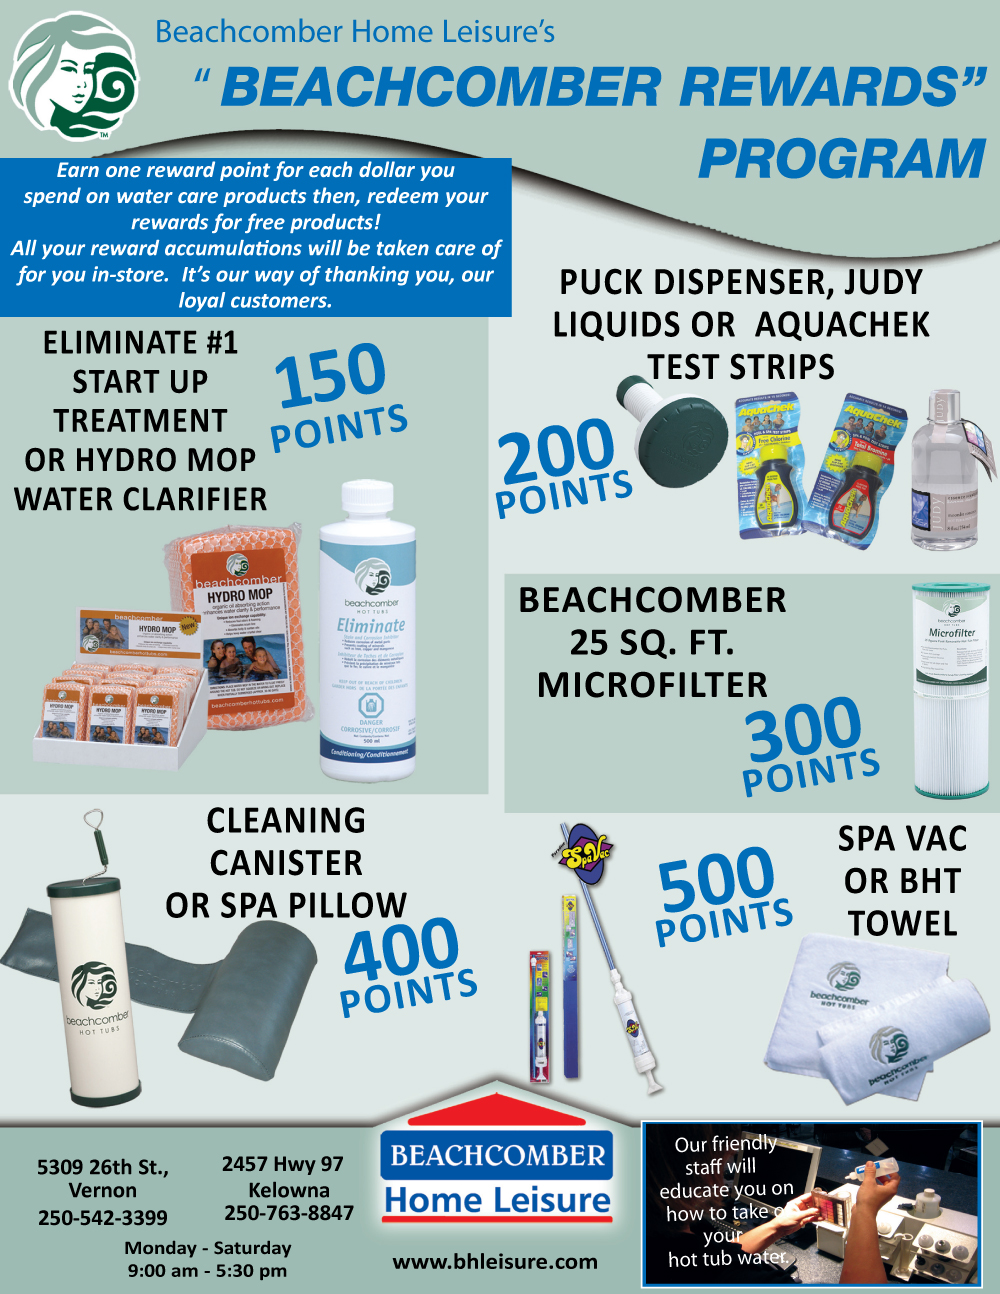 Beachcomber Rewards Program